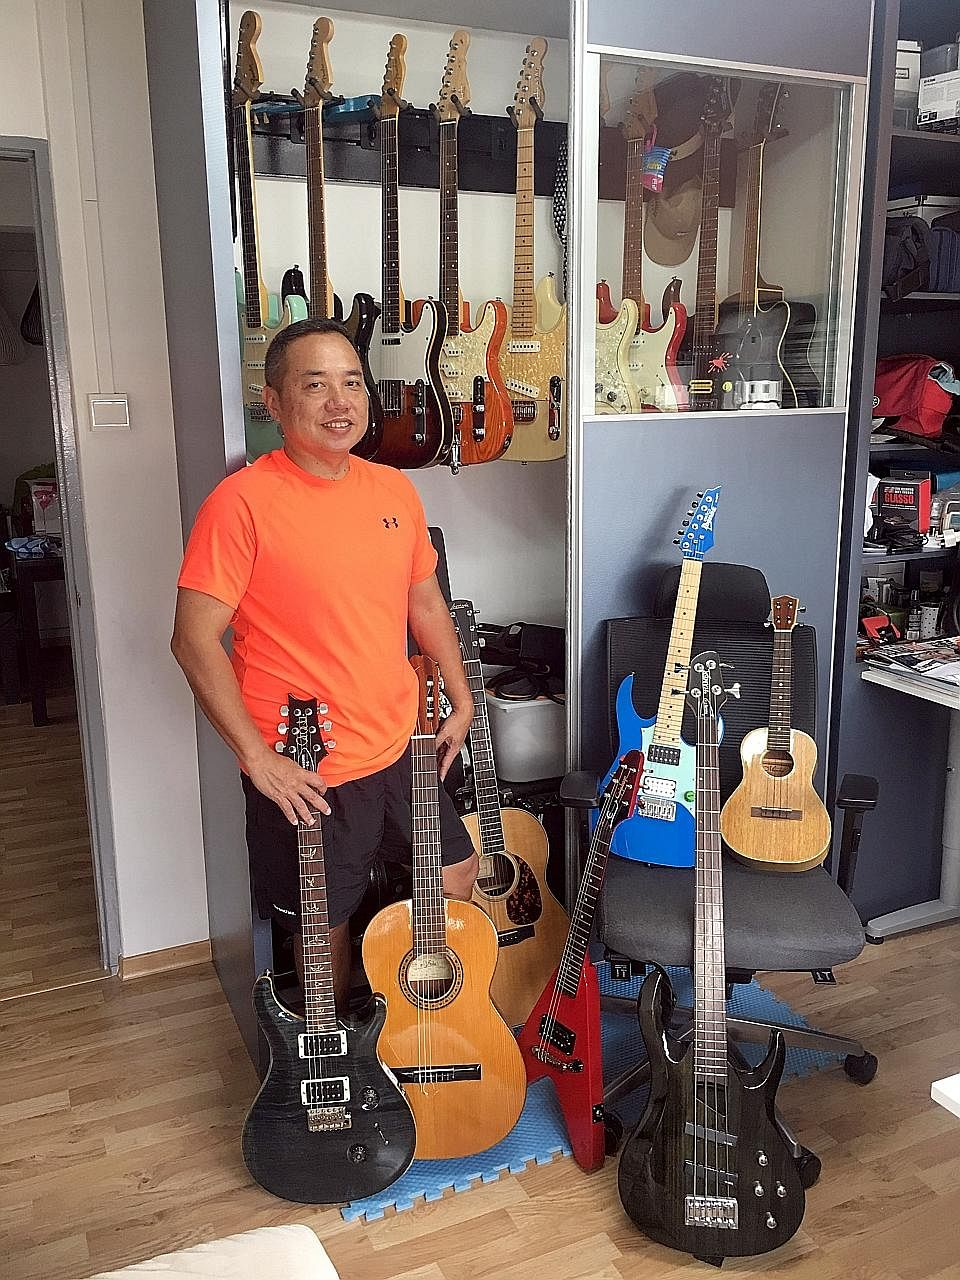 Mr Sim Hong Huat with his collection of 20 stringed instruments, mainly guitars (above), and playing at Eusoff Hall during his university days (left).